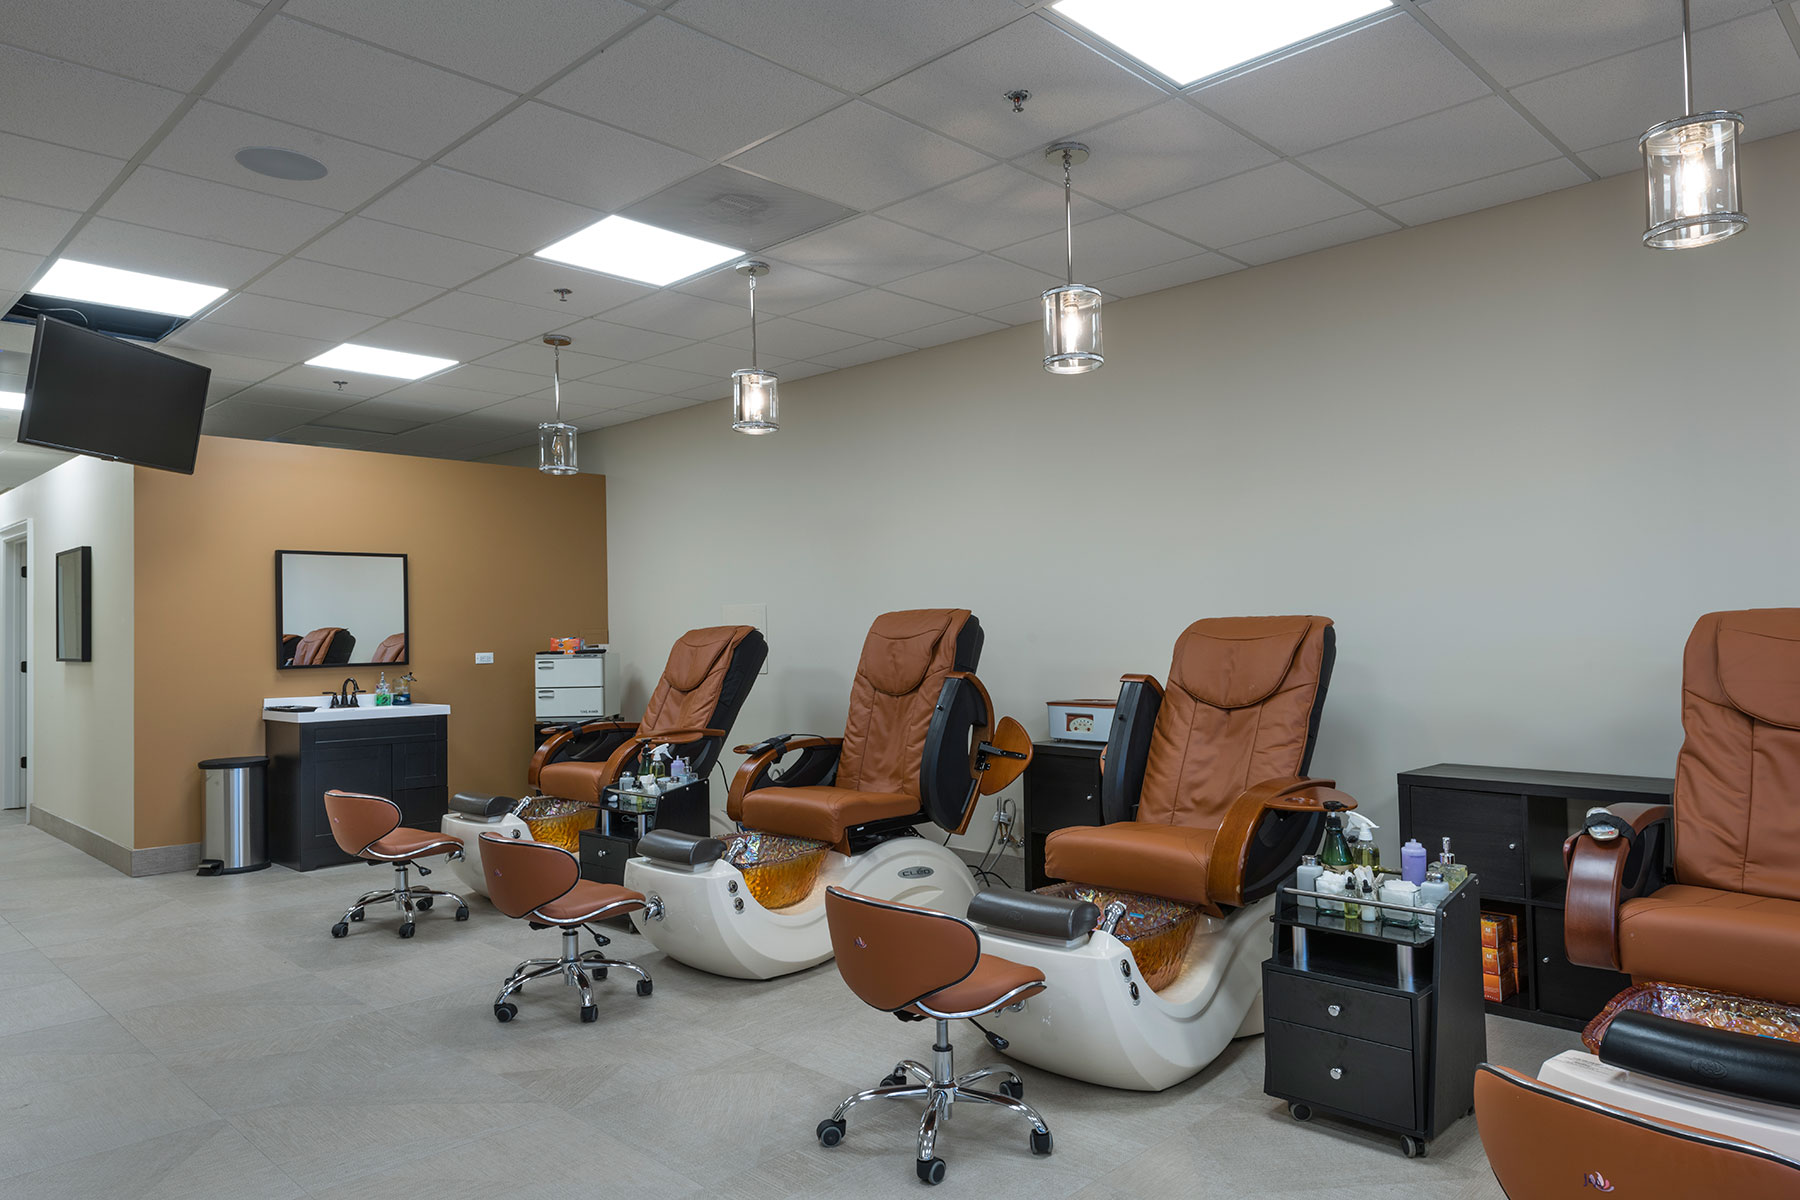 Pedicure Stations - Hollywood Trendz Hair & Spa Salon, Addison Custom Home. America's Custom Home Builders: New Construction, Remodeling, Restoration Services. Residential and Commercial.